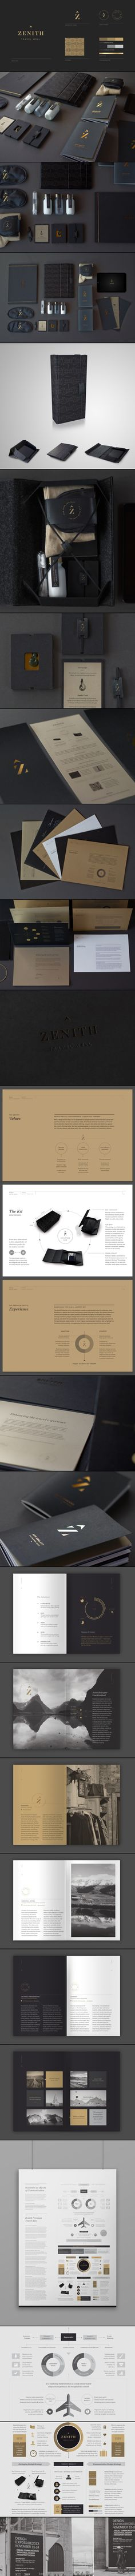 Zenith Premium Travel Kits - New Zealand identity packaging branding curated by Packaging Diva PD Corporate Identity Design, Brand Identity Design, Identity Branding, Visual Identity, Brand Design, Design Typography, Graphic Design Branding, Logo Design, Brochure Design